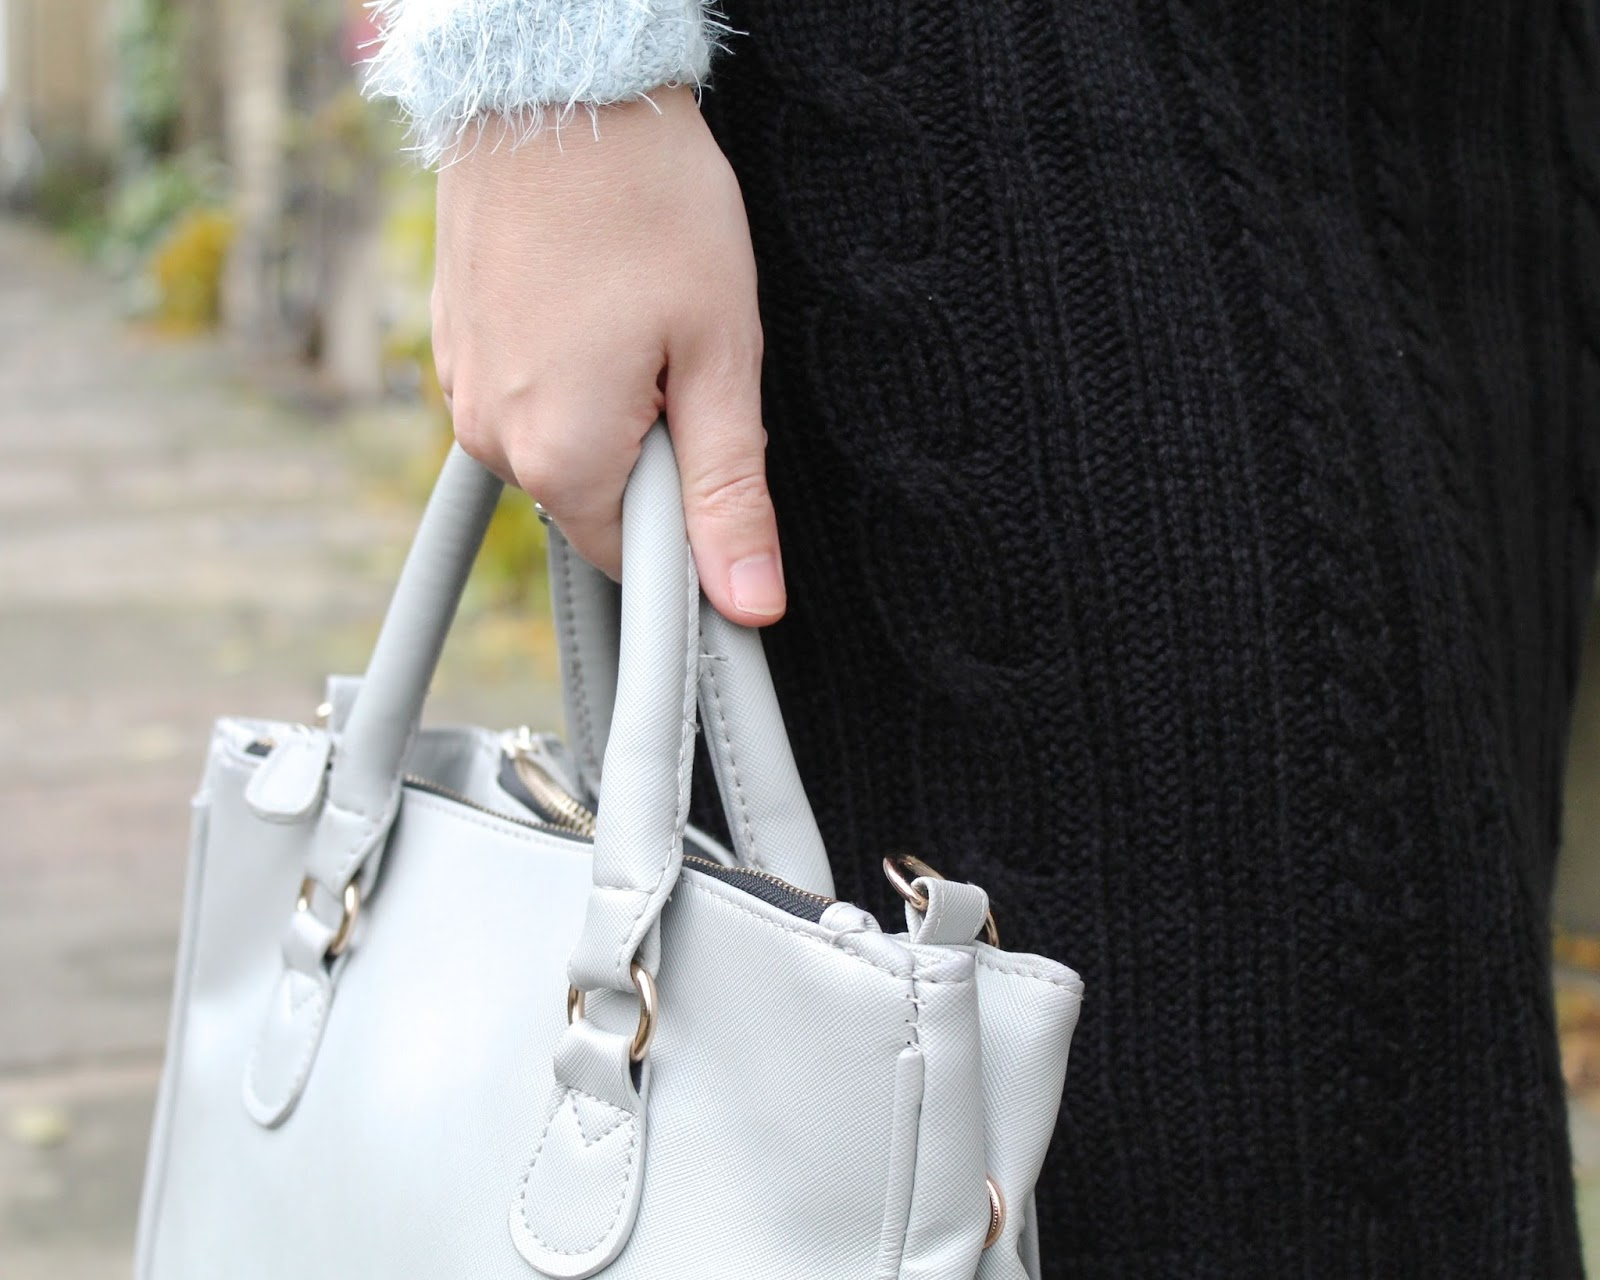 Light grey Primark handbag and black cable skirt